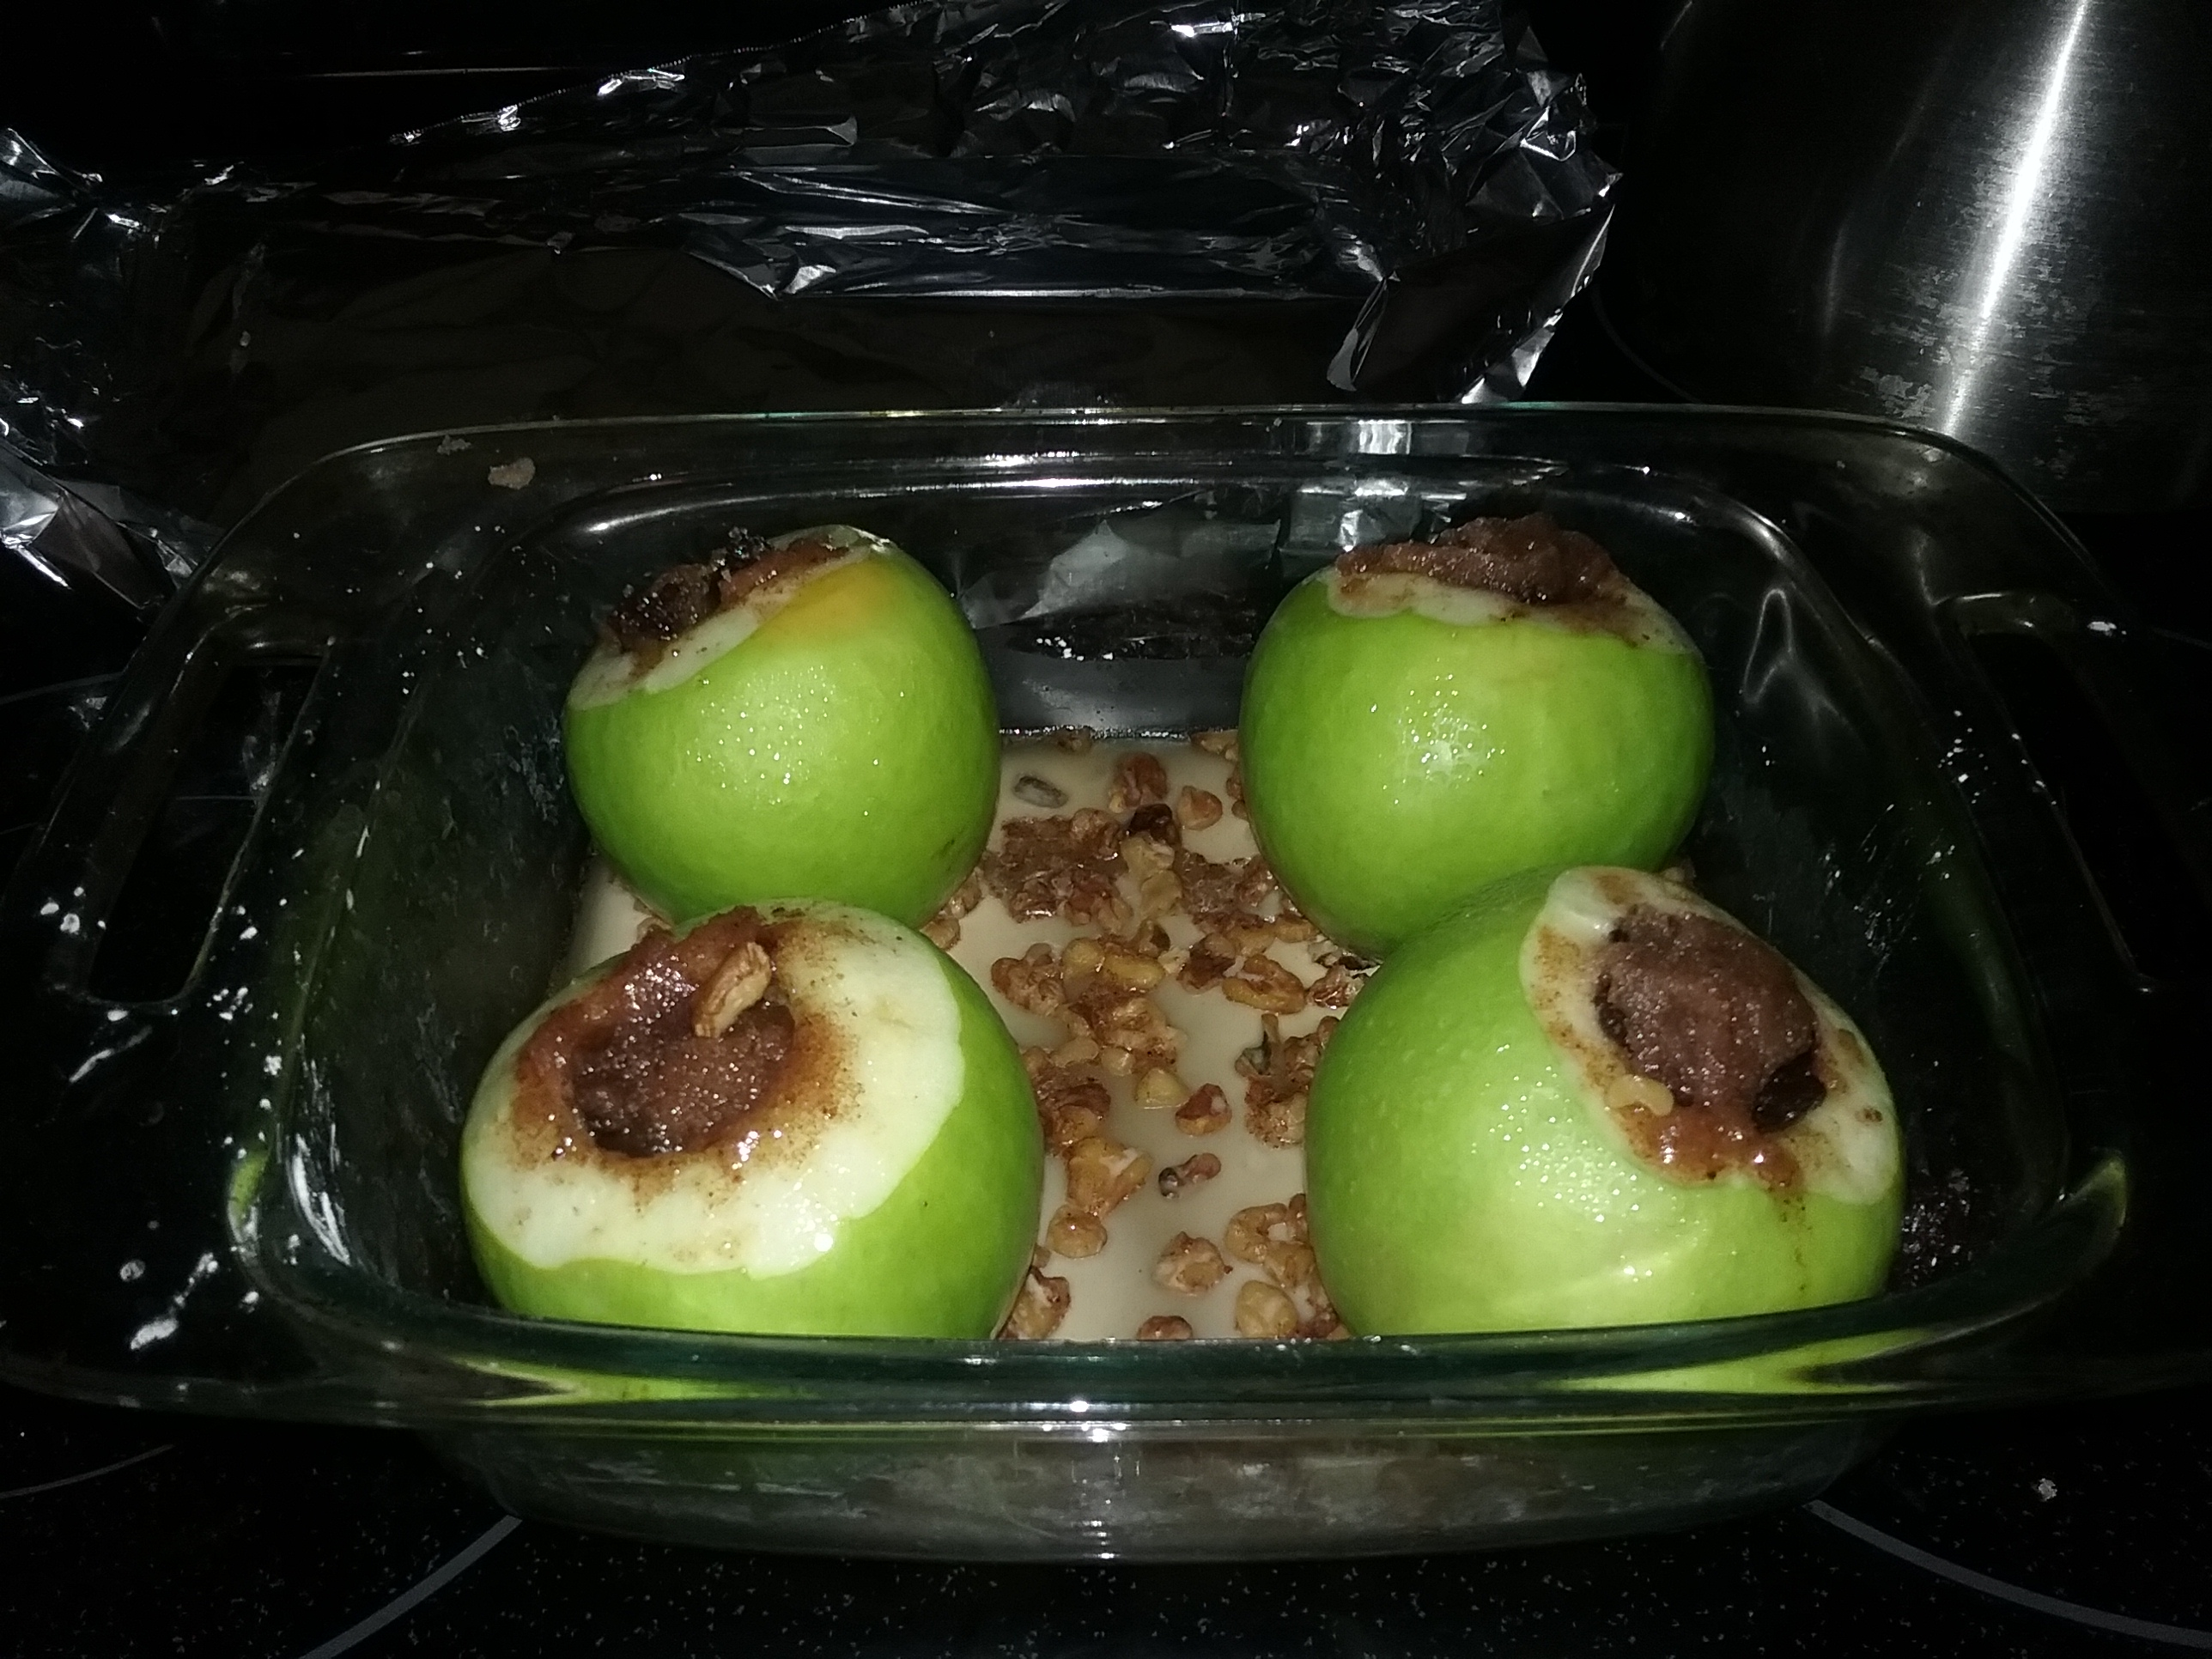 Spiced Pirate Baked Apples